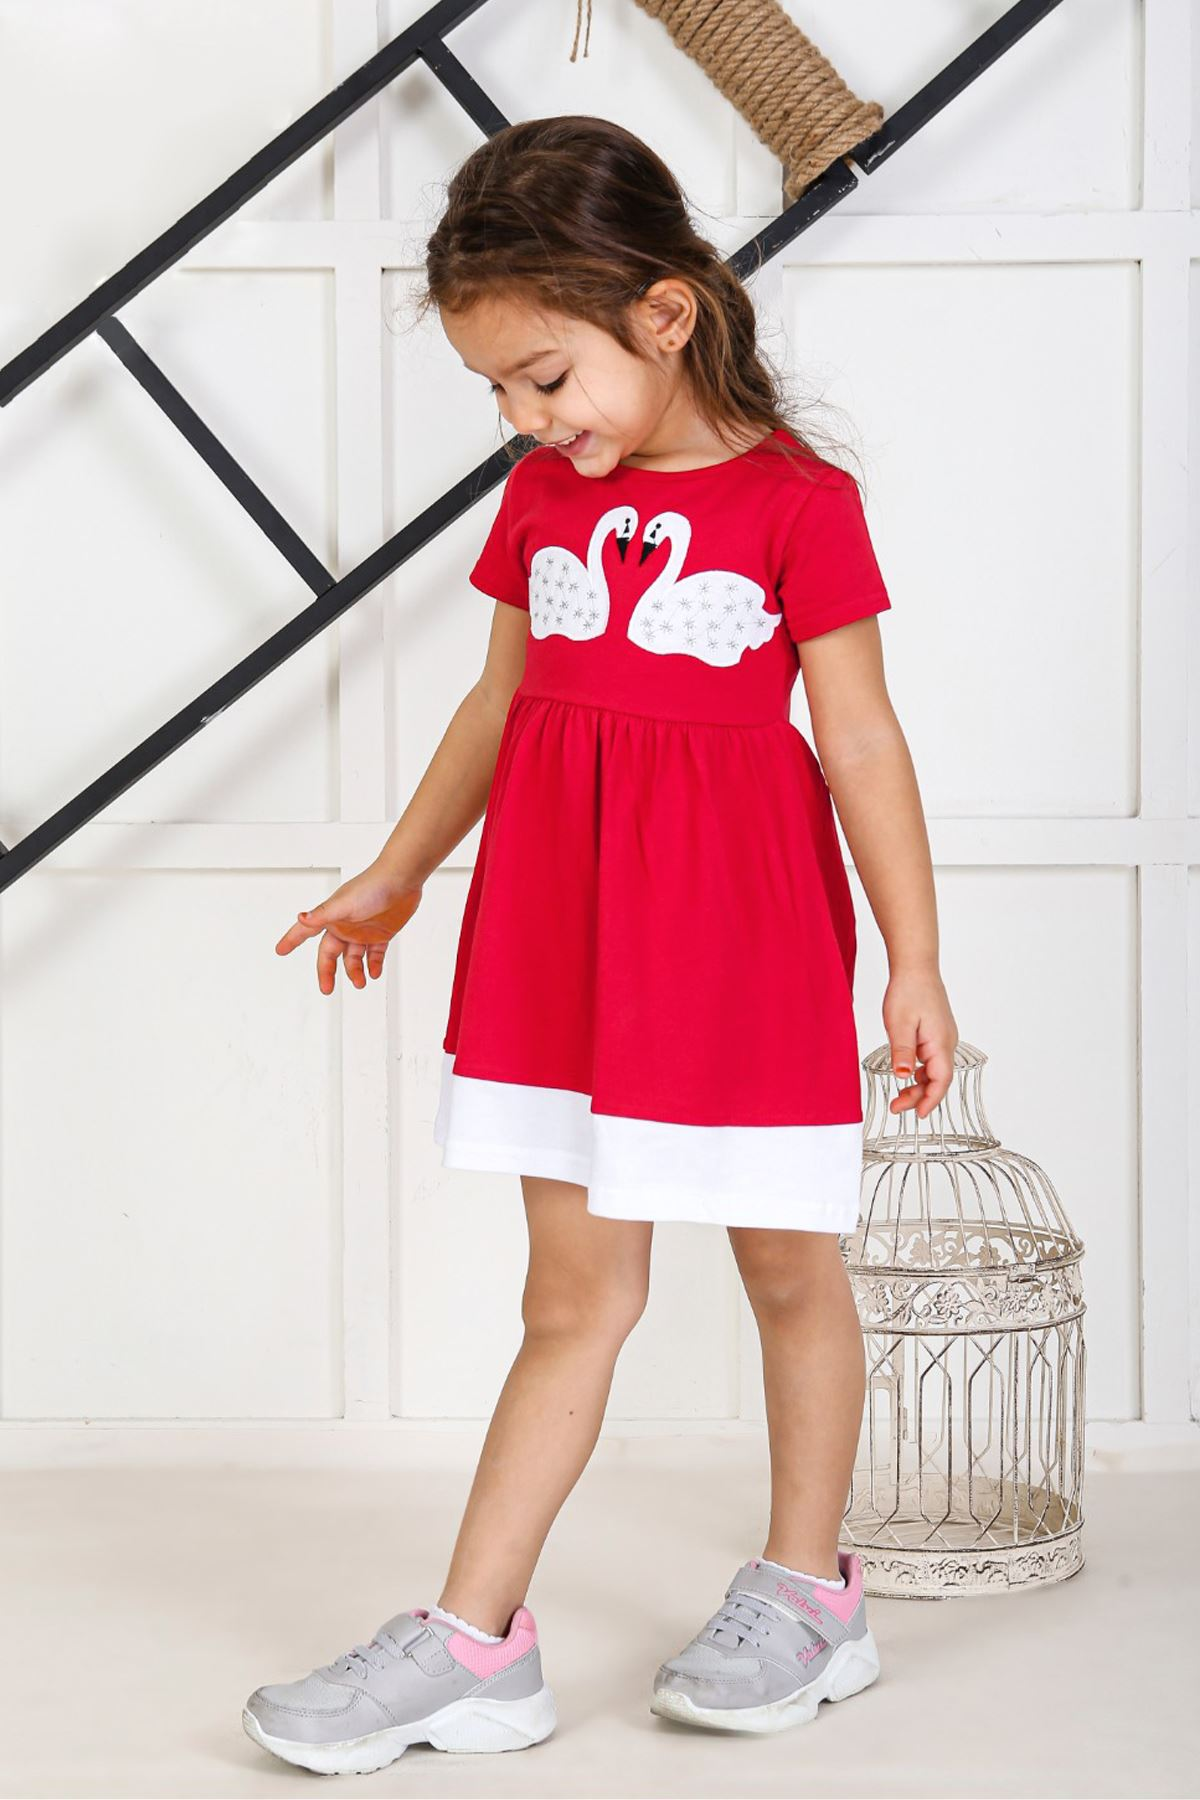 Grenadine red Kids 2021 Girls Girls' Skirt Dress Suits Cotton Casual Summer Children Clothing Girl Dress Cute Holiday Outfits Sport